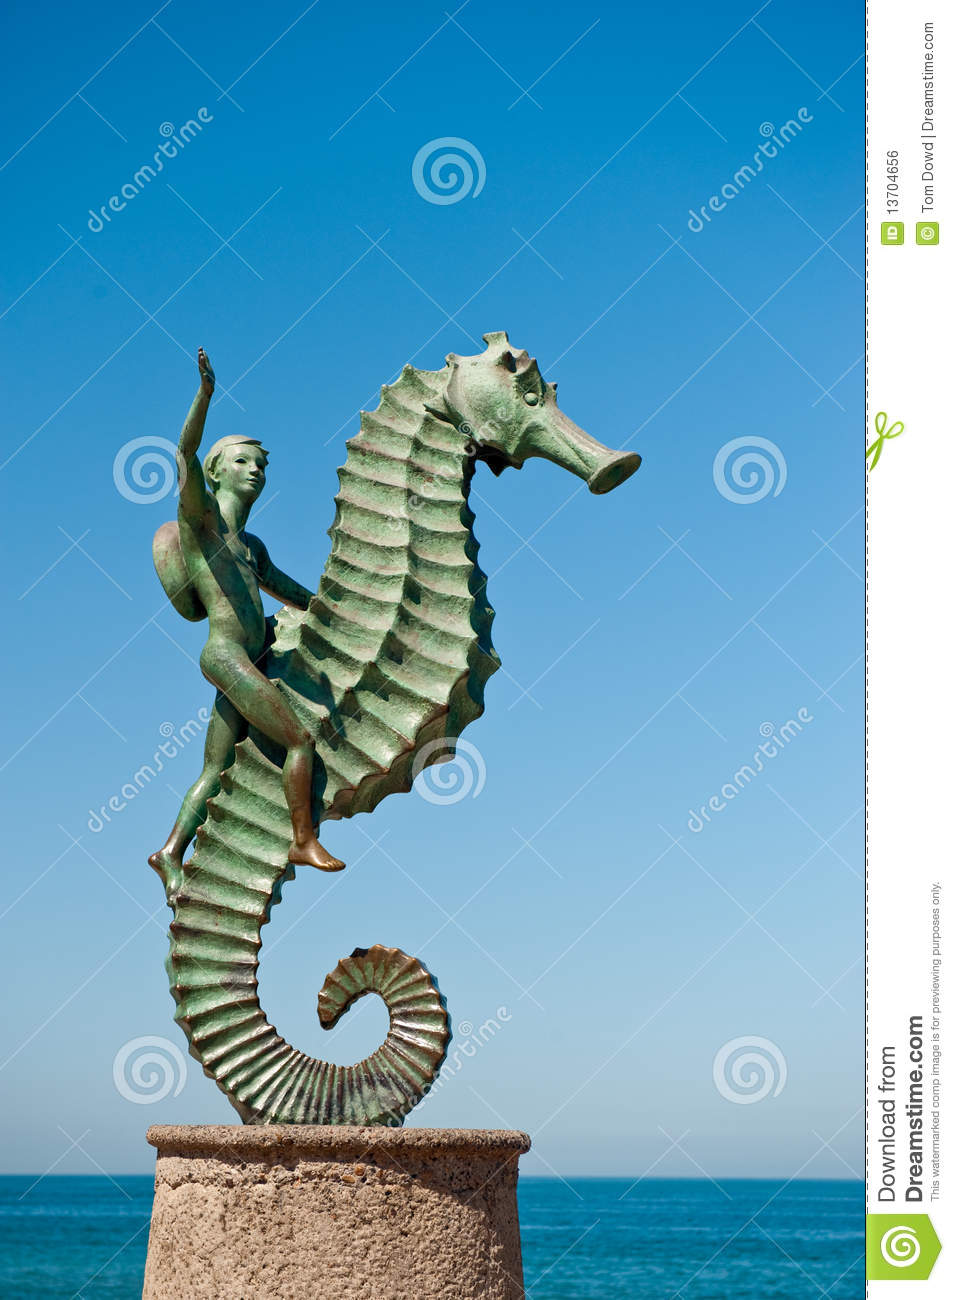 4 504 Seahorse Photos Free Royalty Free Stock Photos From Dreamstime